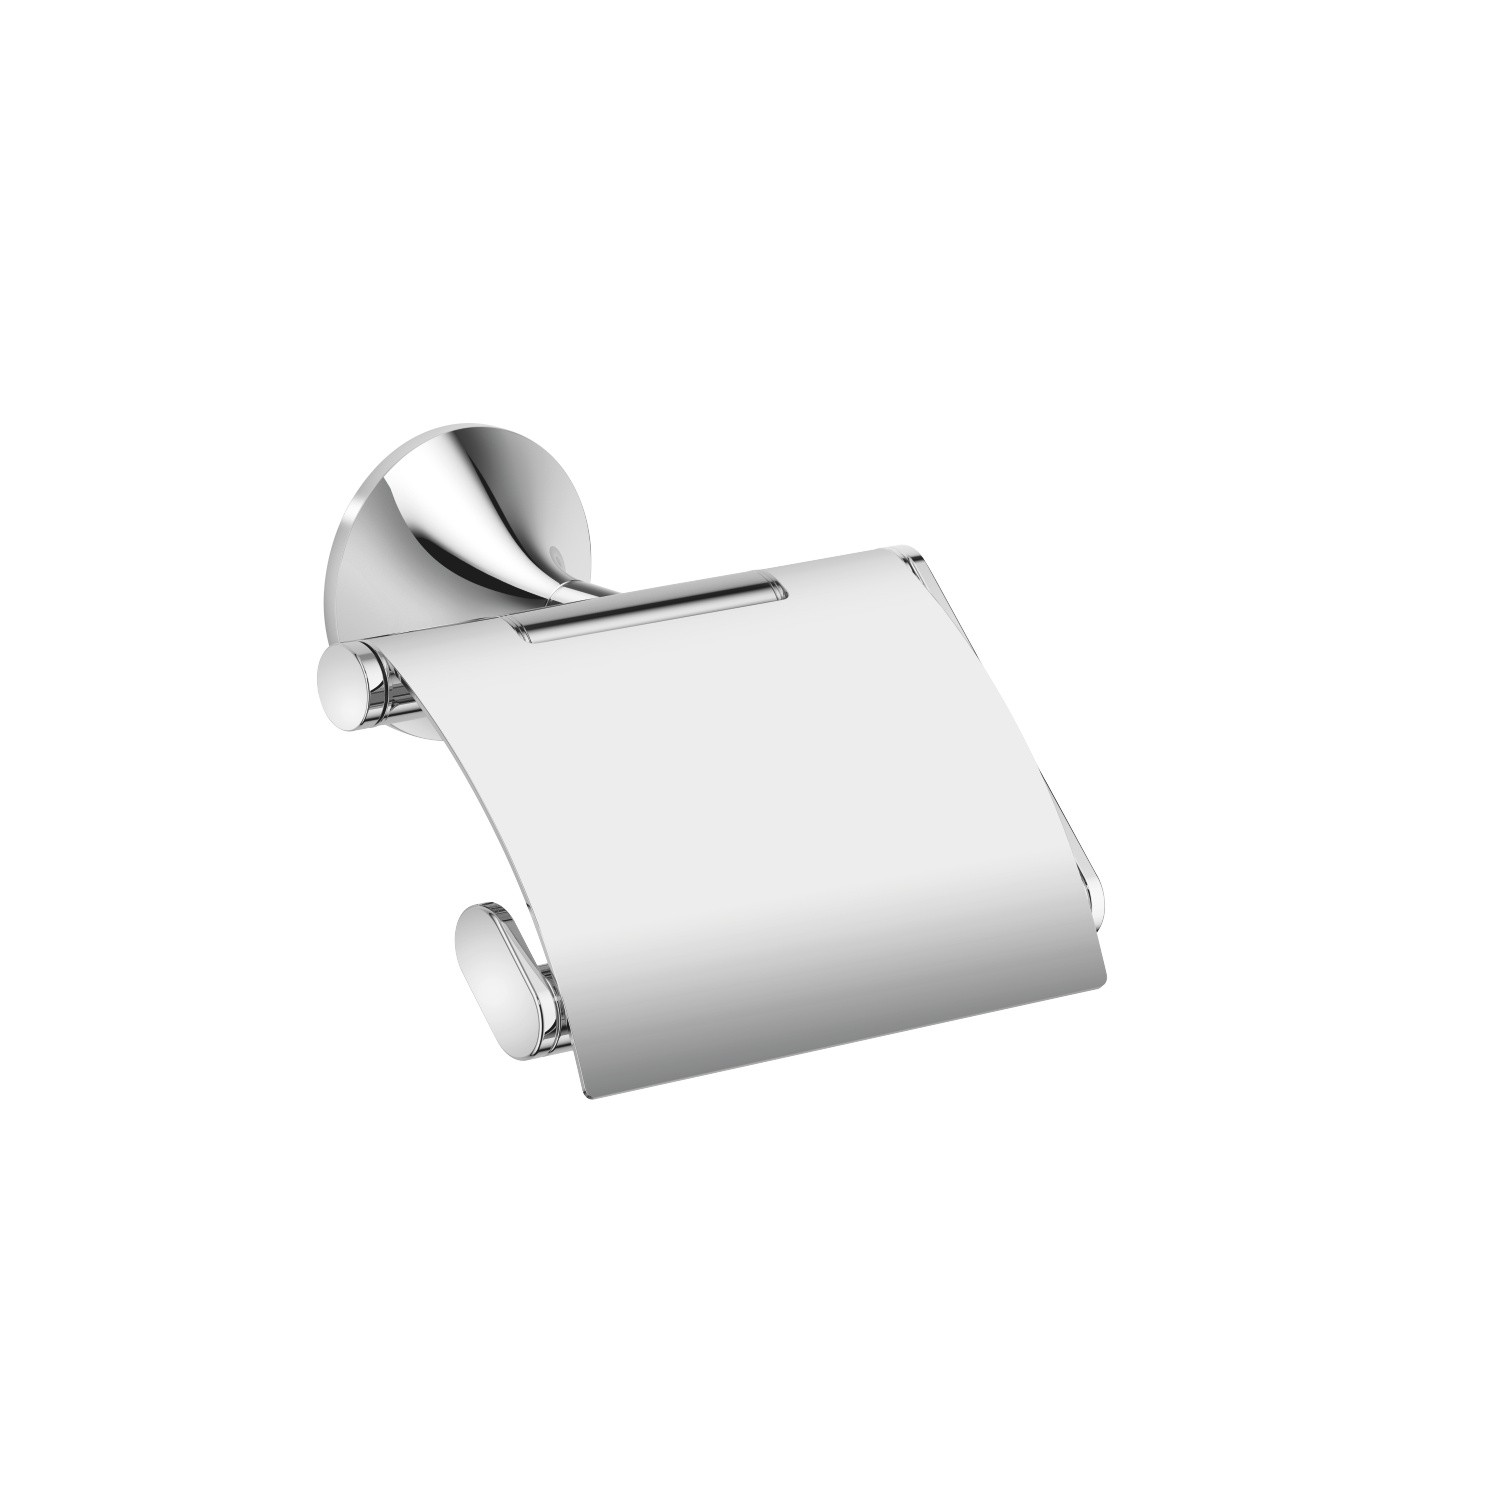 Dornbracht 83510809 Vaia 5 1 8 Inch Wall Mount Toilet Paper Holder With Cover 83510809 00 83510809 06 83510809 16